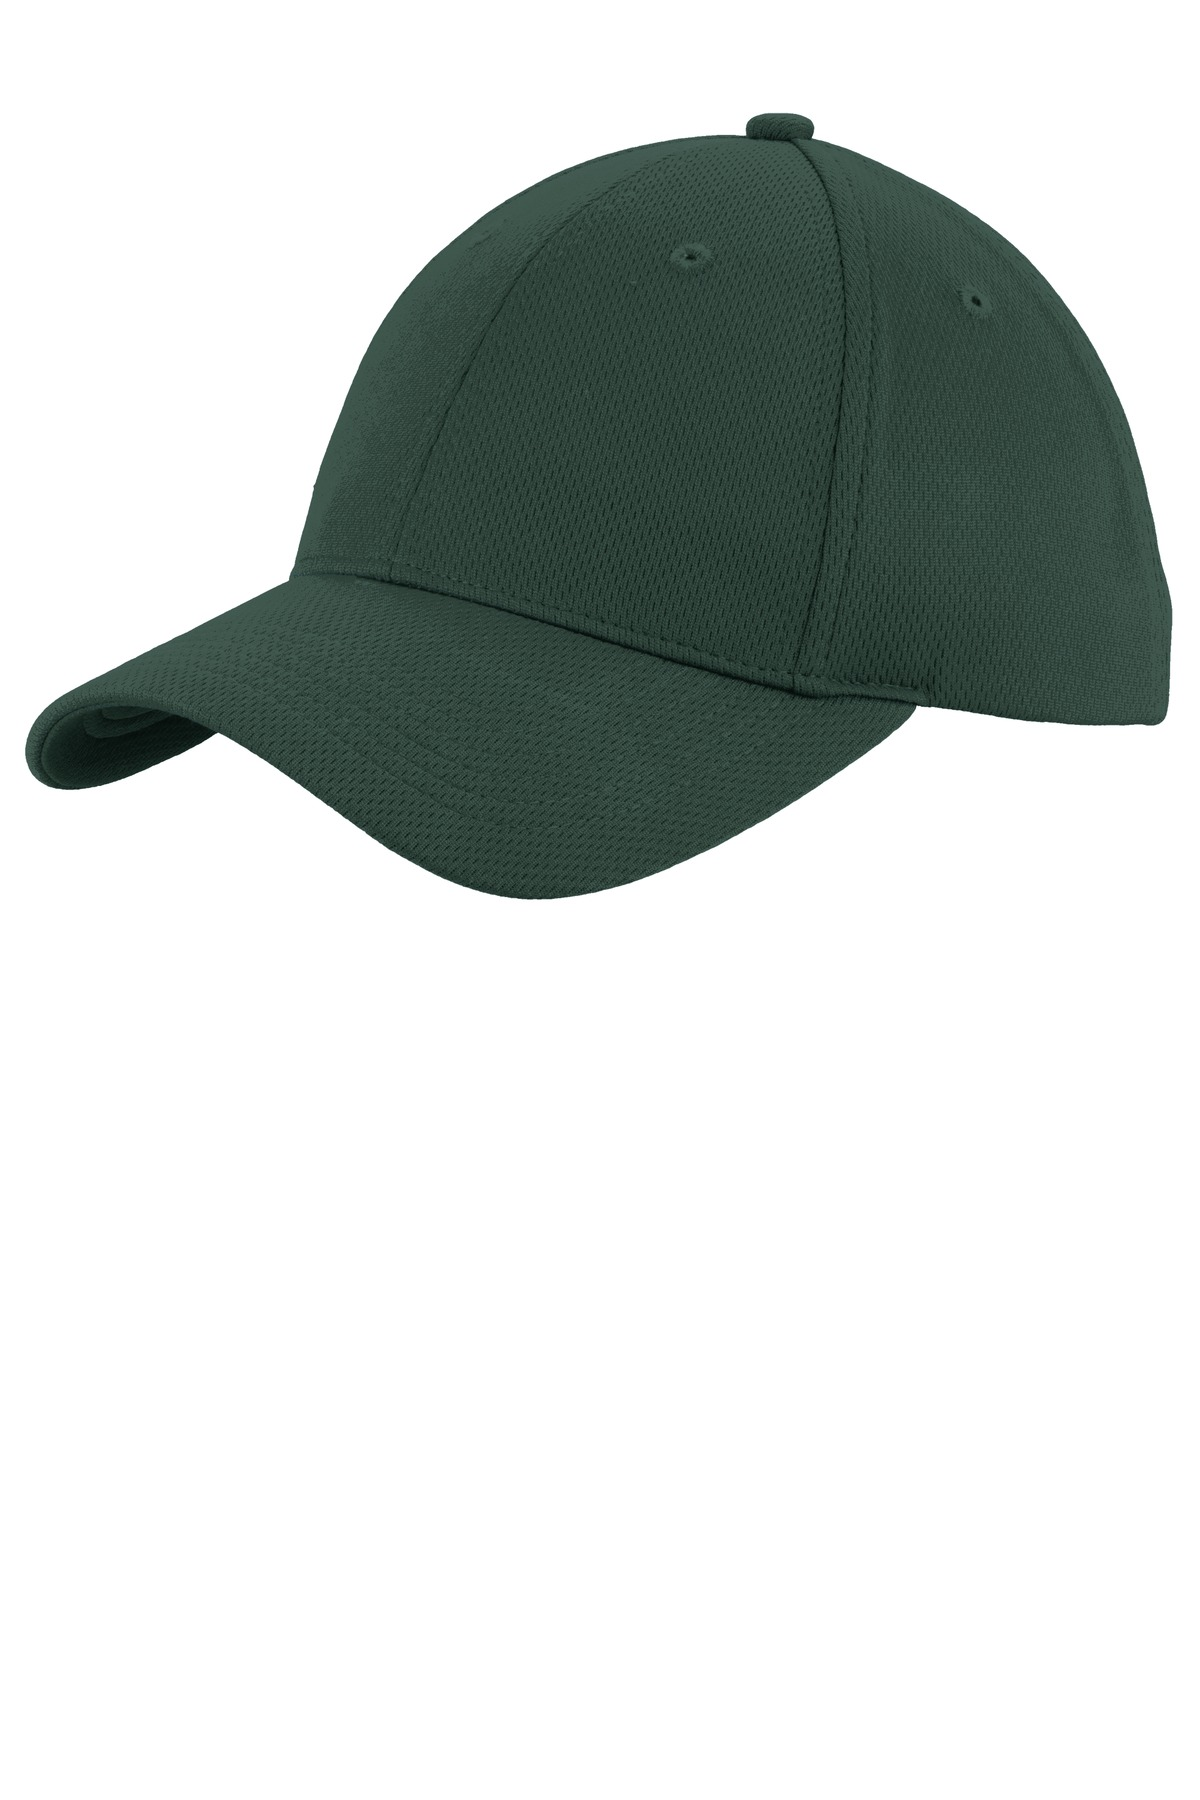 Sport-Tek ®  PosiCharge ®  RacerMesh ®  Cap. STC26 - Dark Forest Green